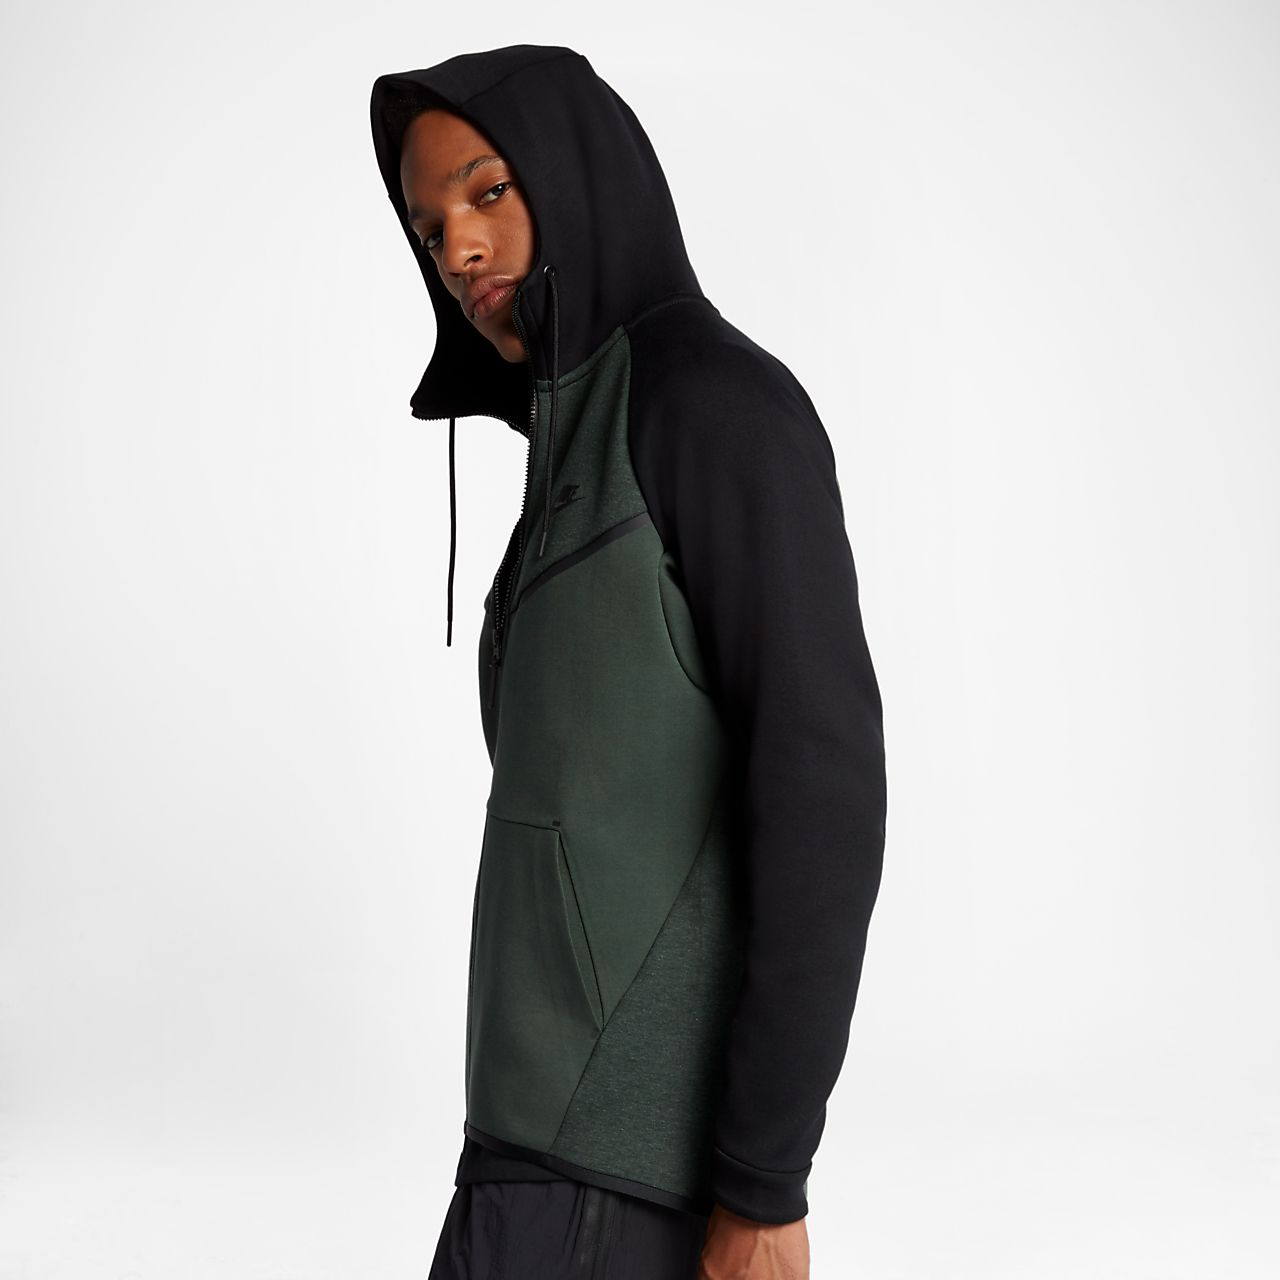 d10d889d9f Nike Sportswear Tech Fleece Windrunner Men s Full-Zip Hoodie. Nike ...